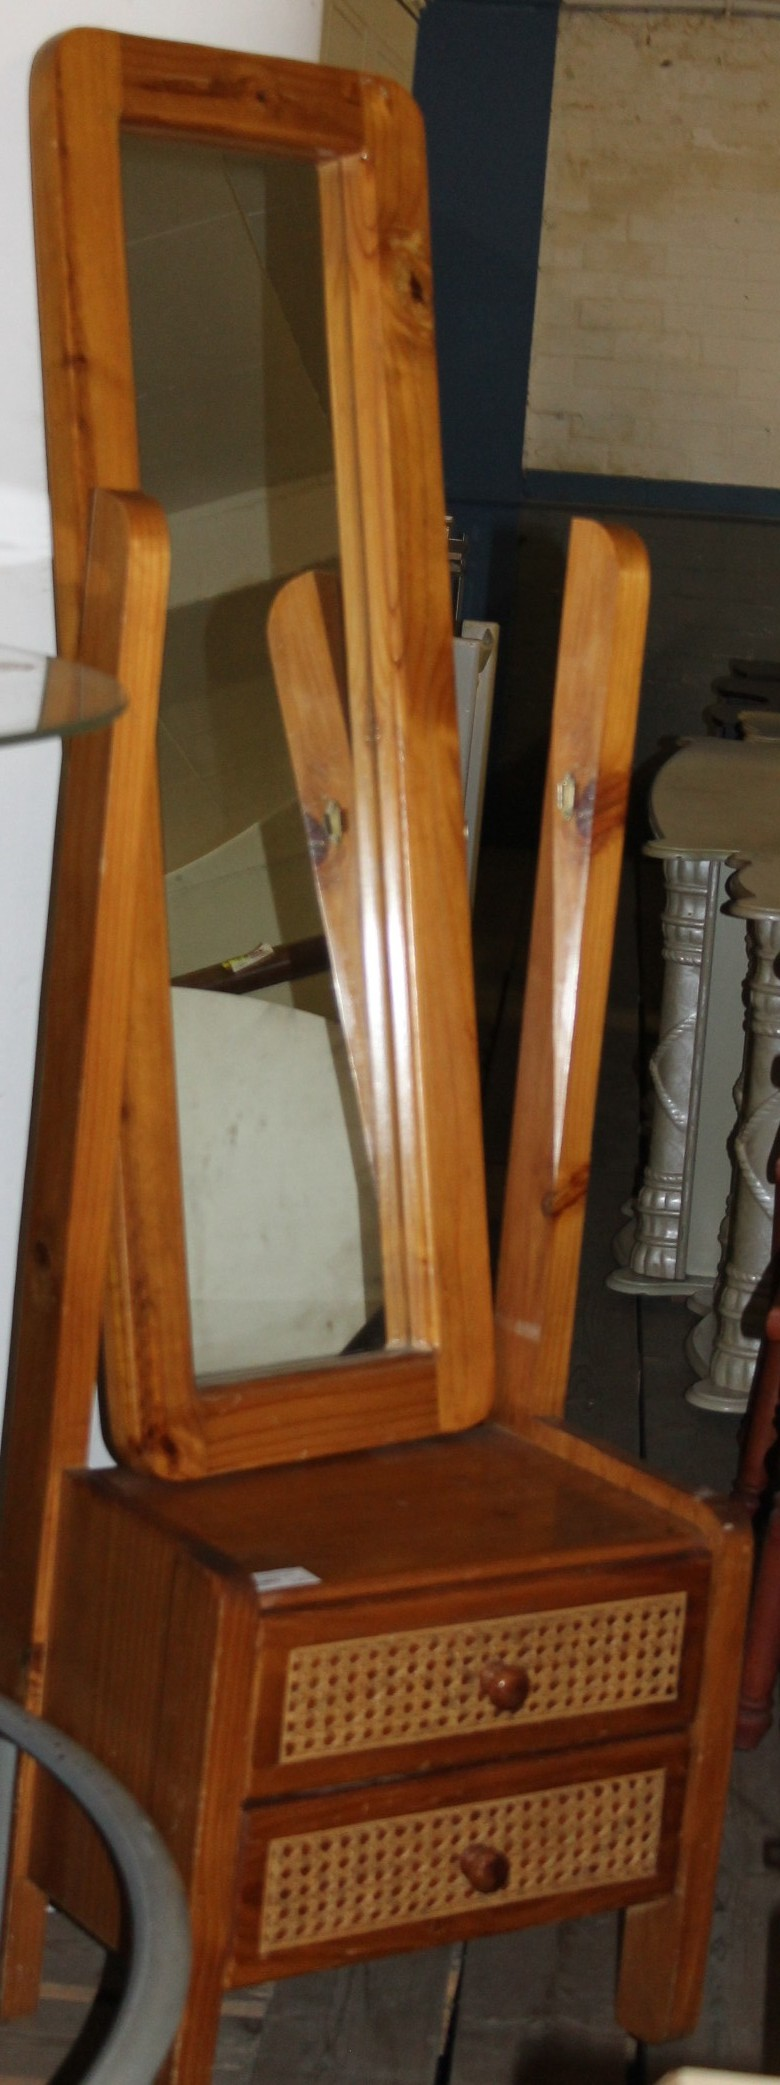 Dressing table S028867j  #Rosettenvillepawnshop